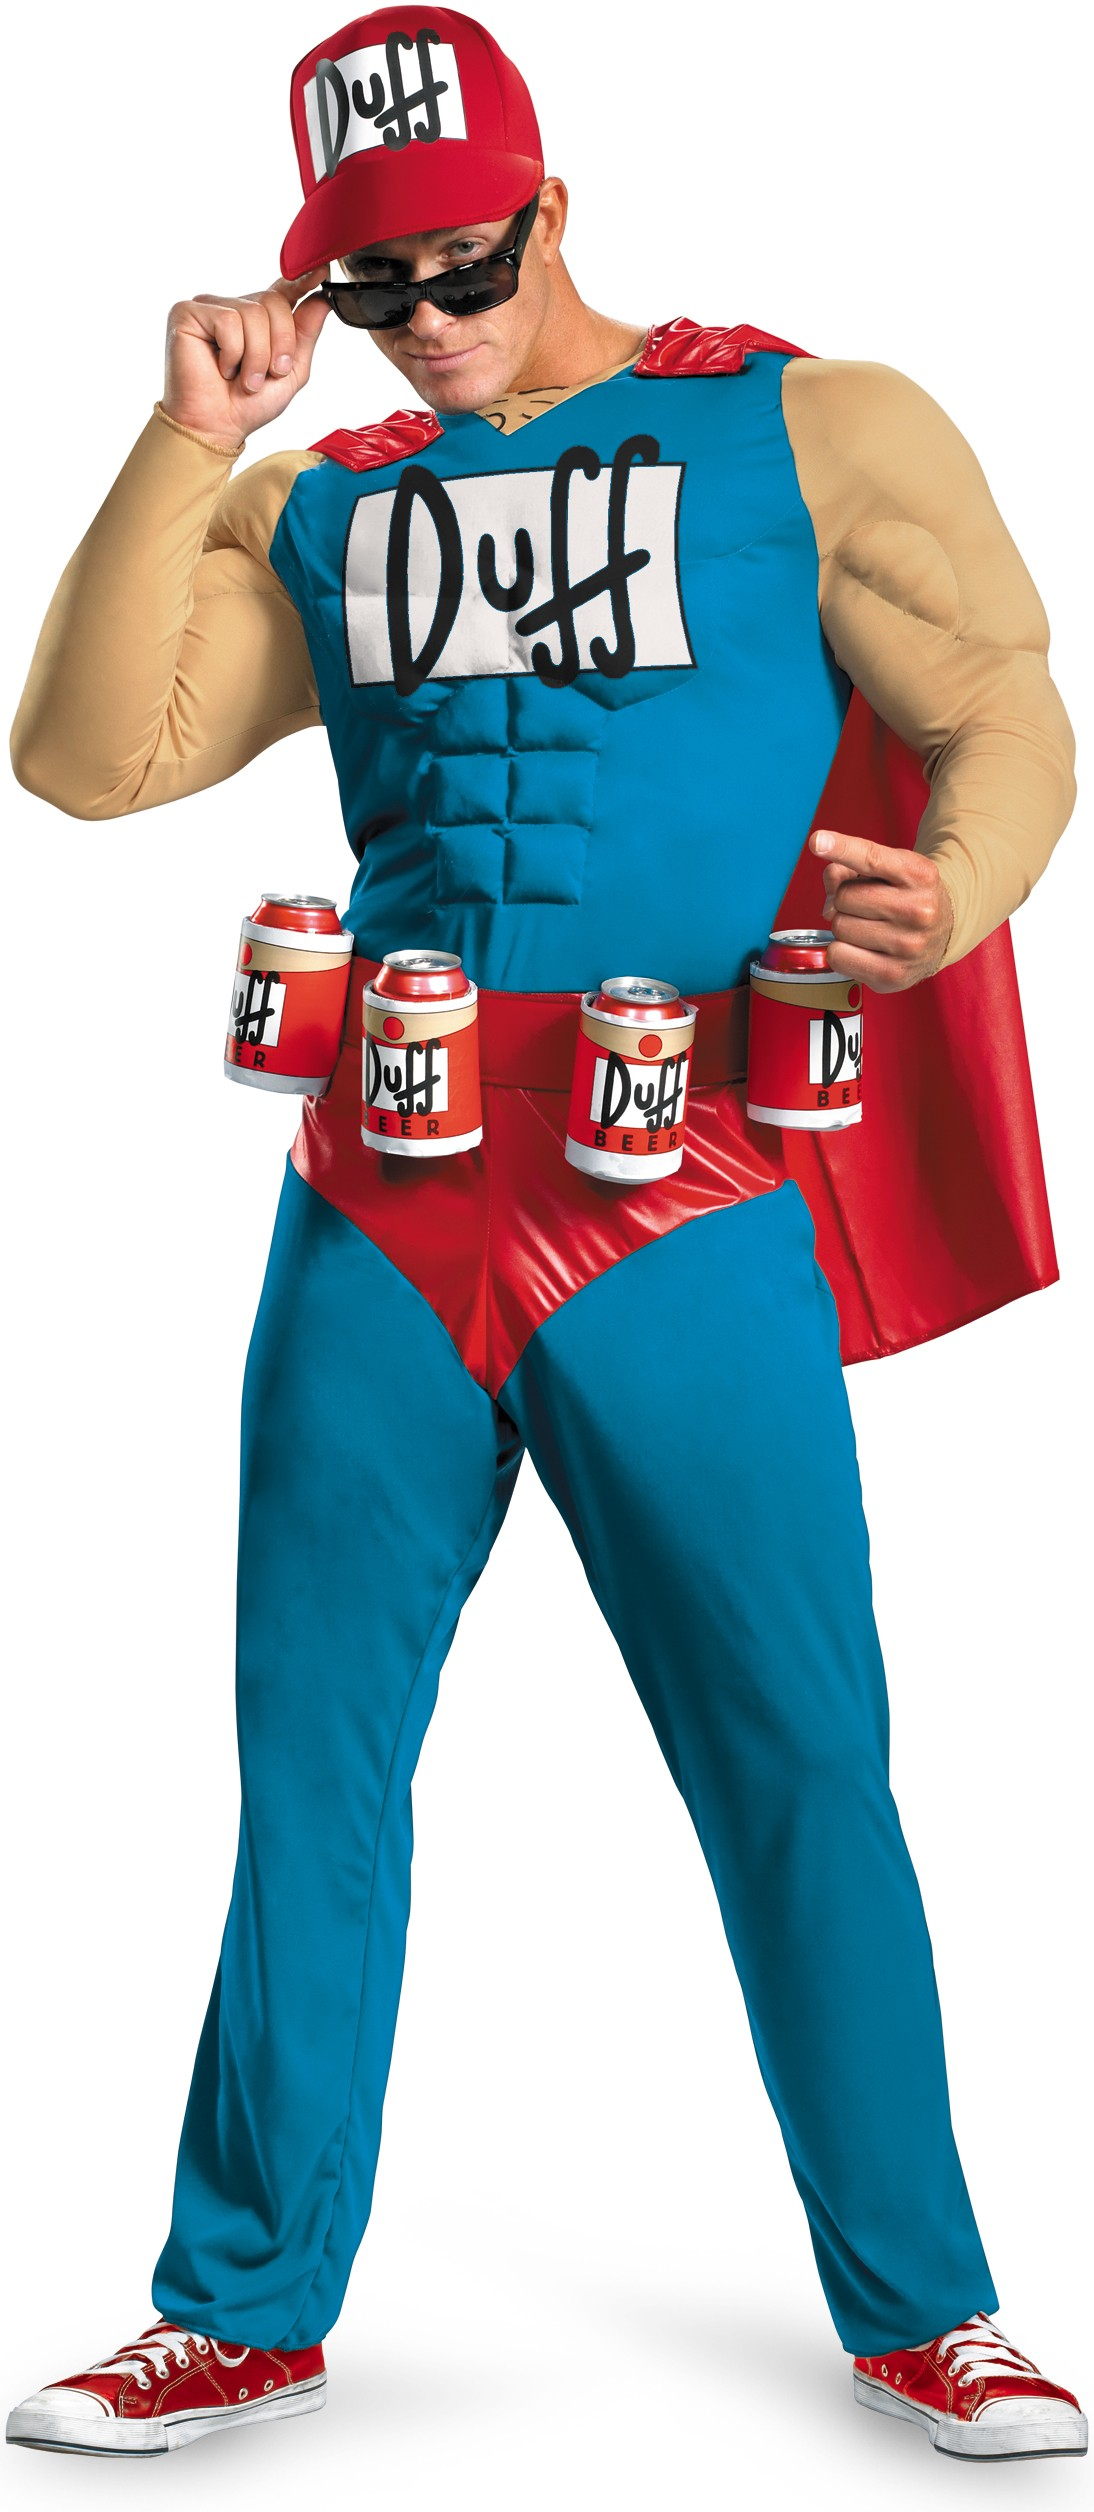 Male Fancy Dress Costumes | Costume & Party Ideas